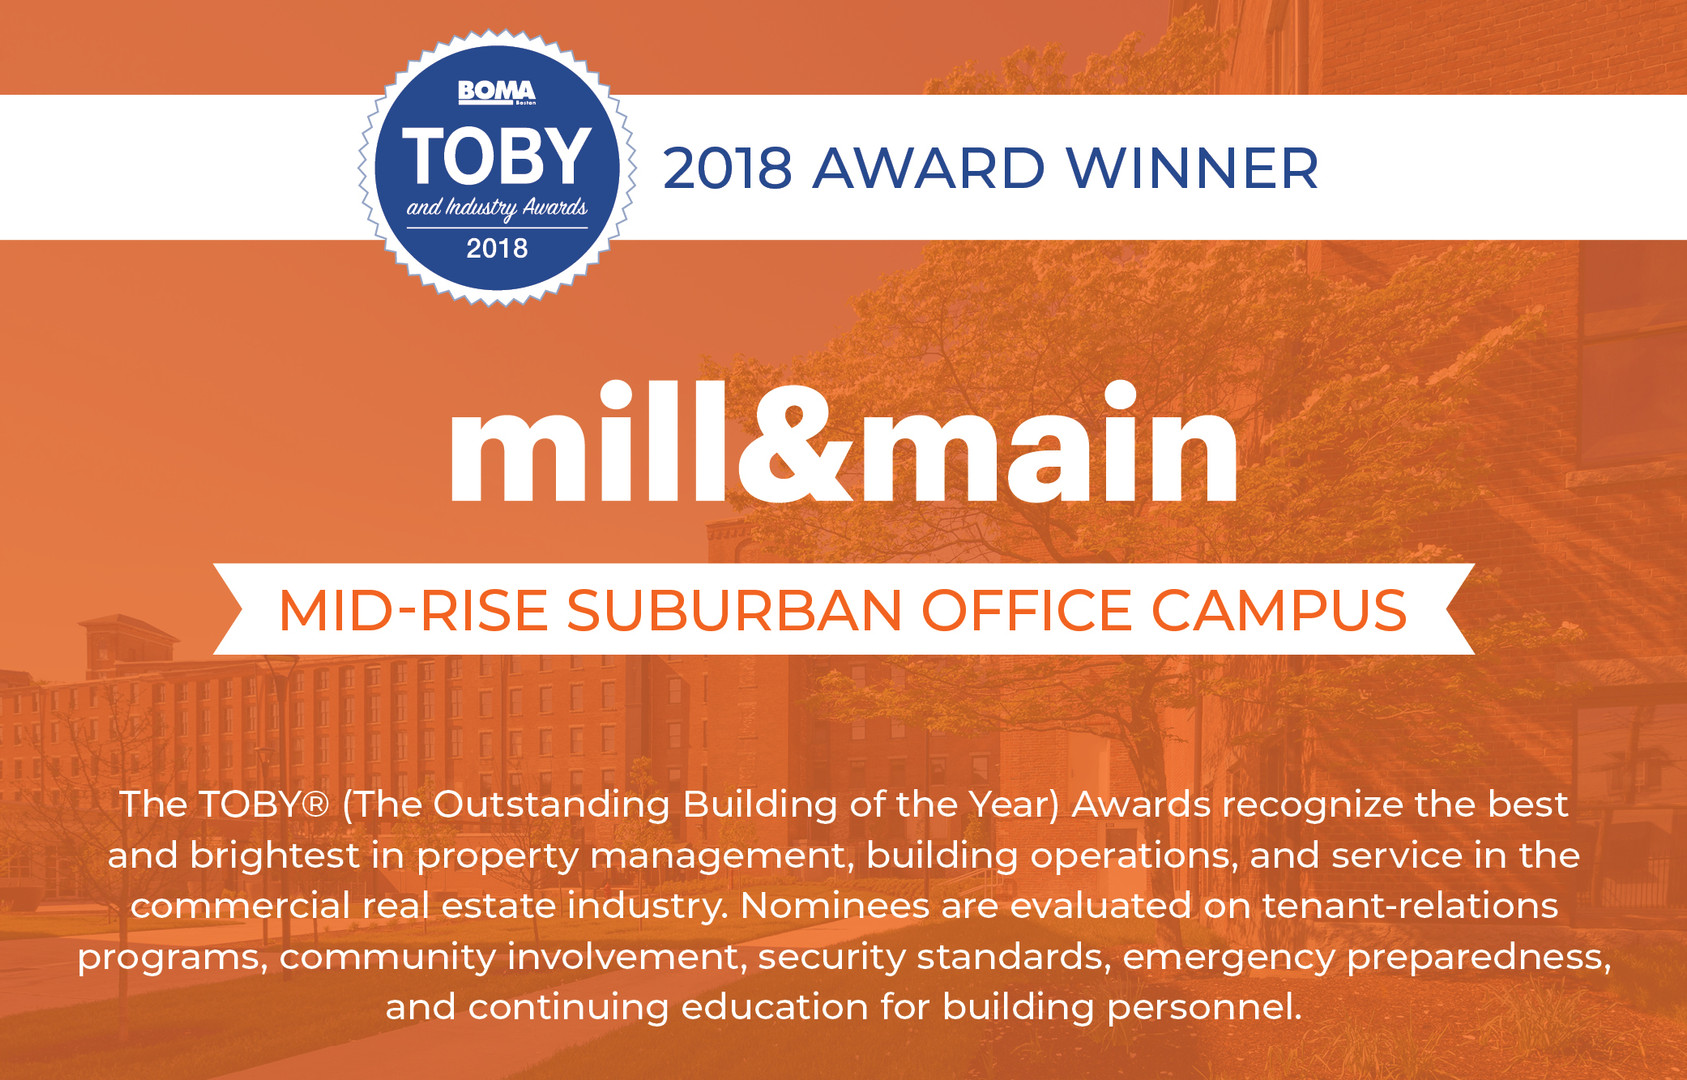 Mill & Main 2018 TOBY Award Winner